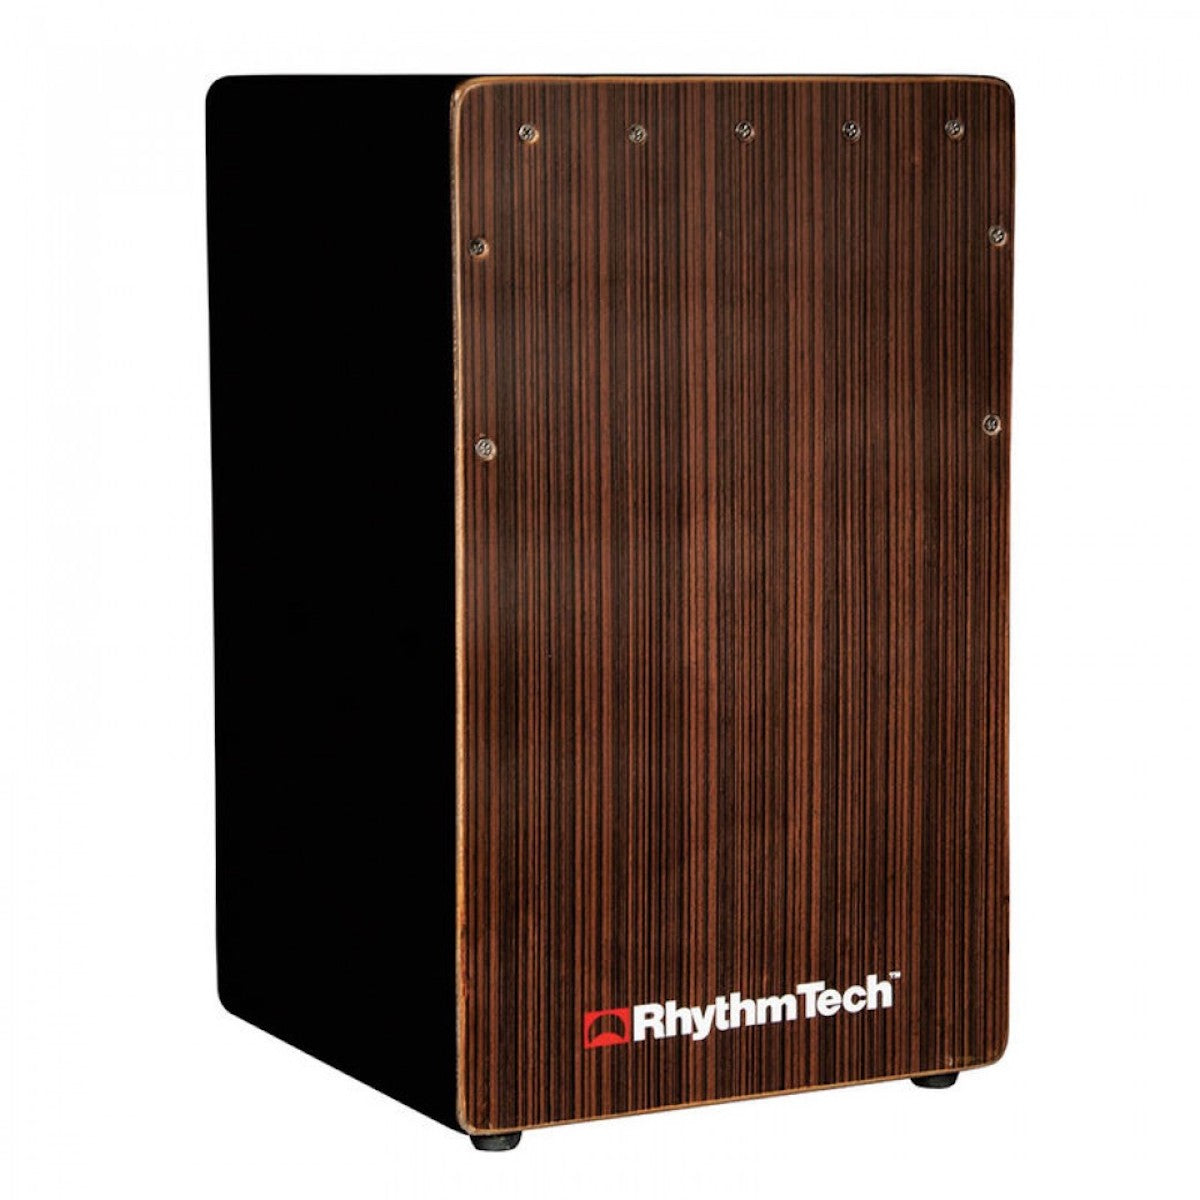 Rhythm Tech Palm Series Cajon